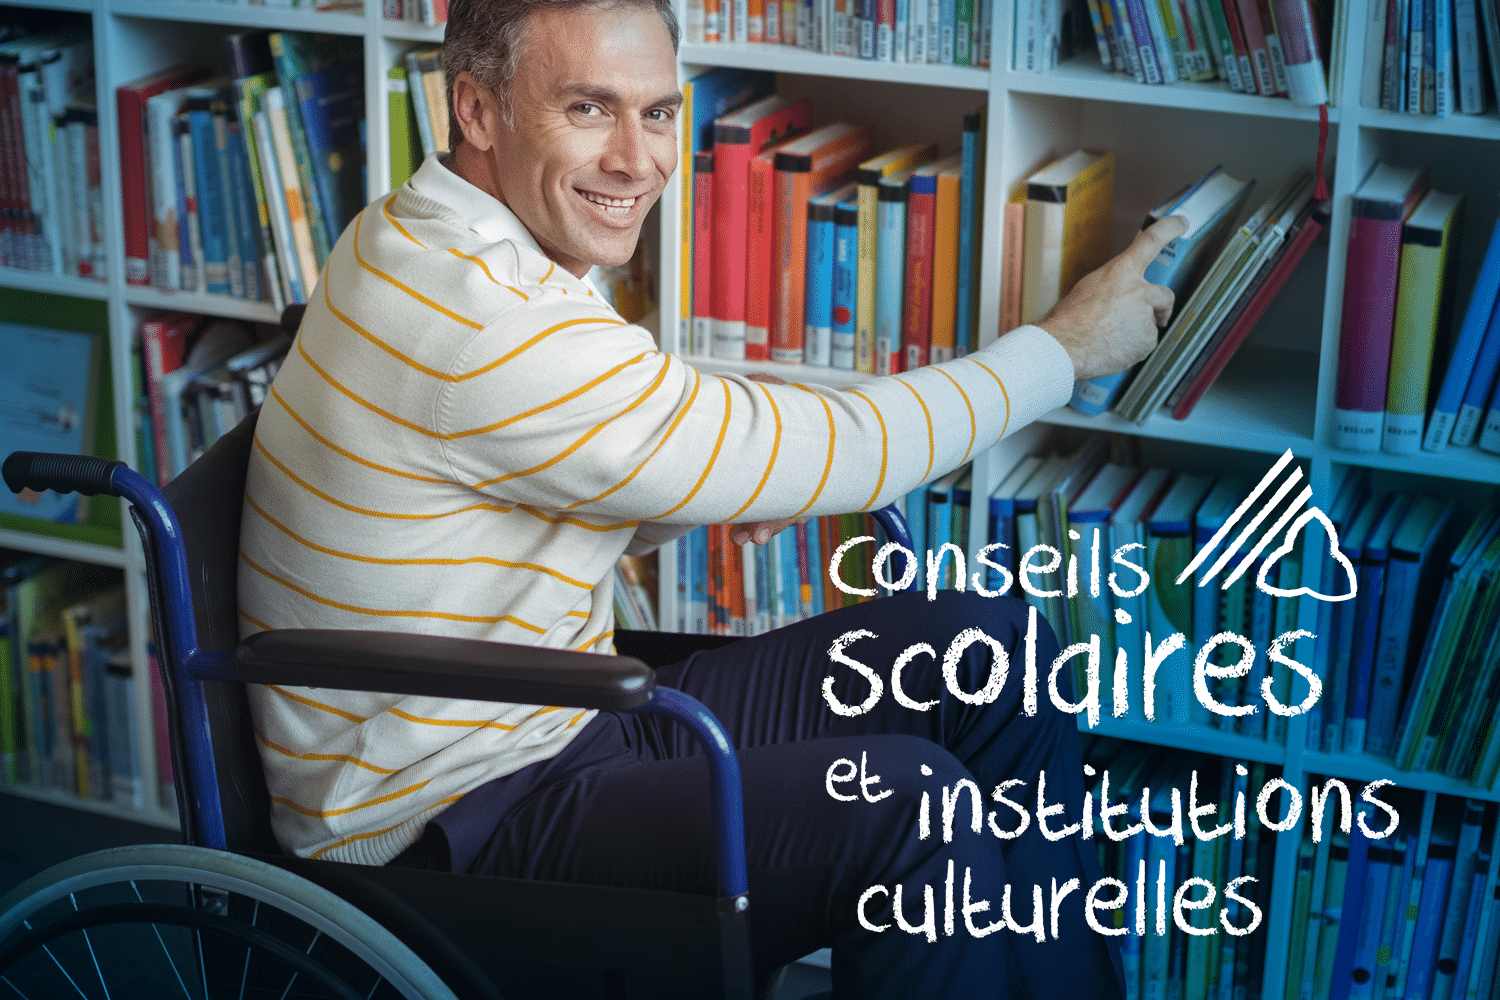 conseils scolaires et instituions culturelles. Man in wheelchair, accessing book in library.